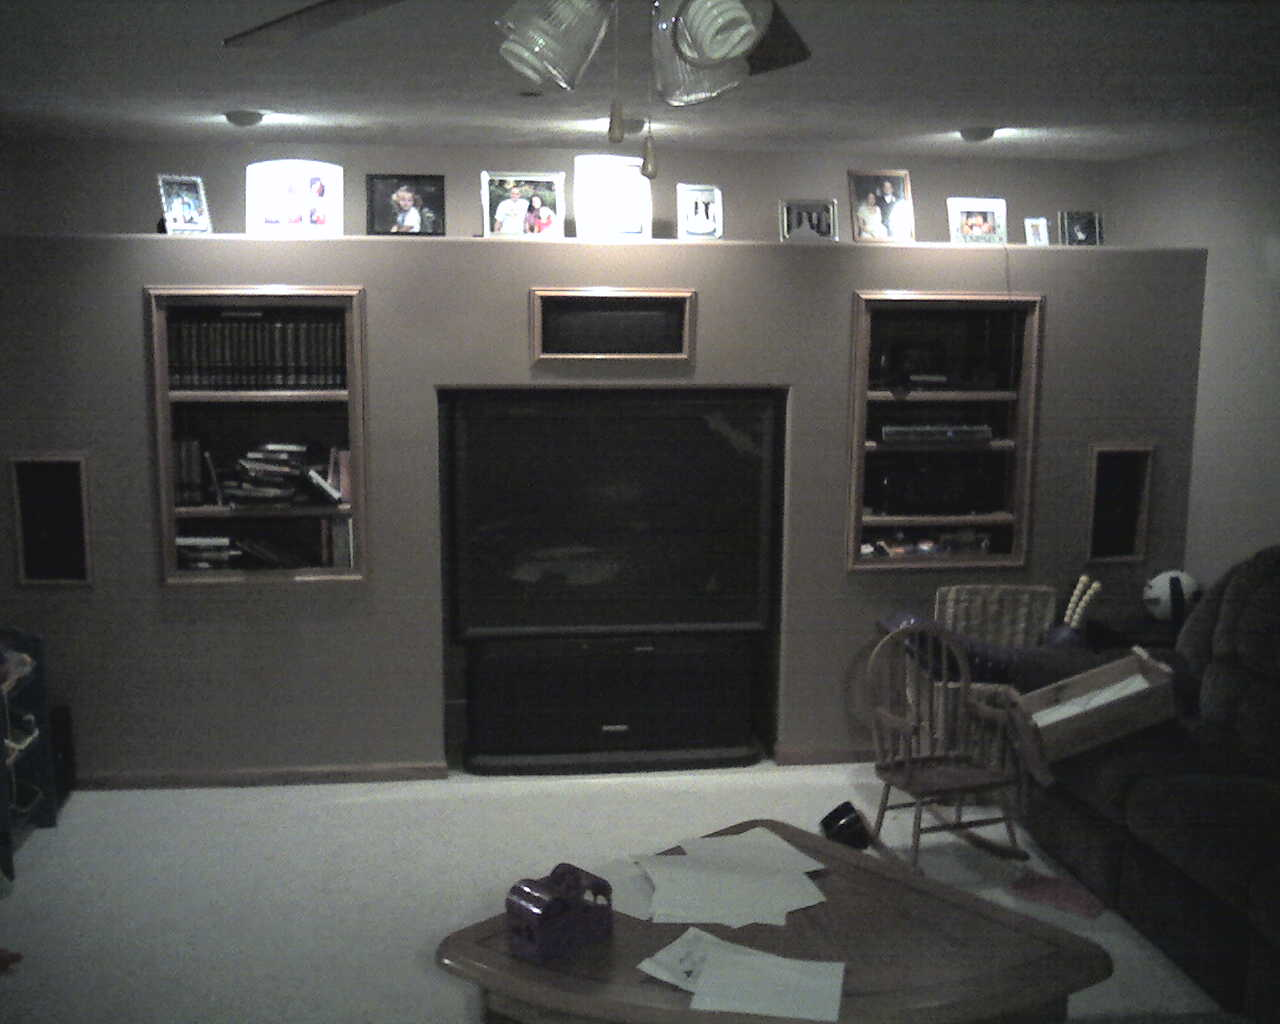 Man Cave Entertainment Center Ideas : Who hates entertainment centers drywall contractor talk